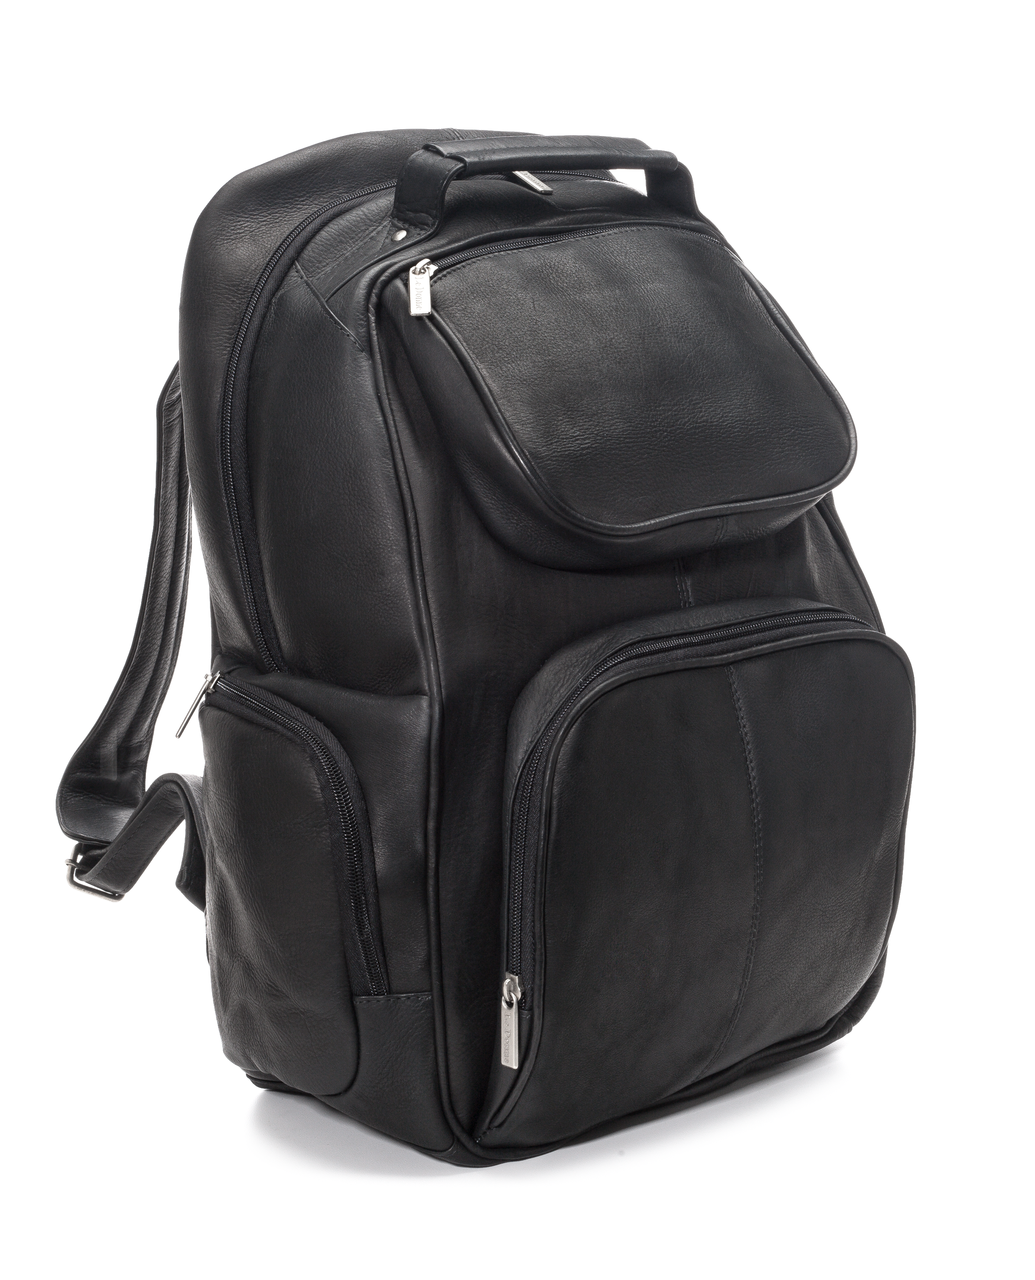 Backpacks With Laptop Pocket 6WoGIE0O